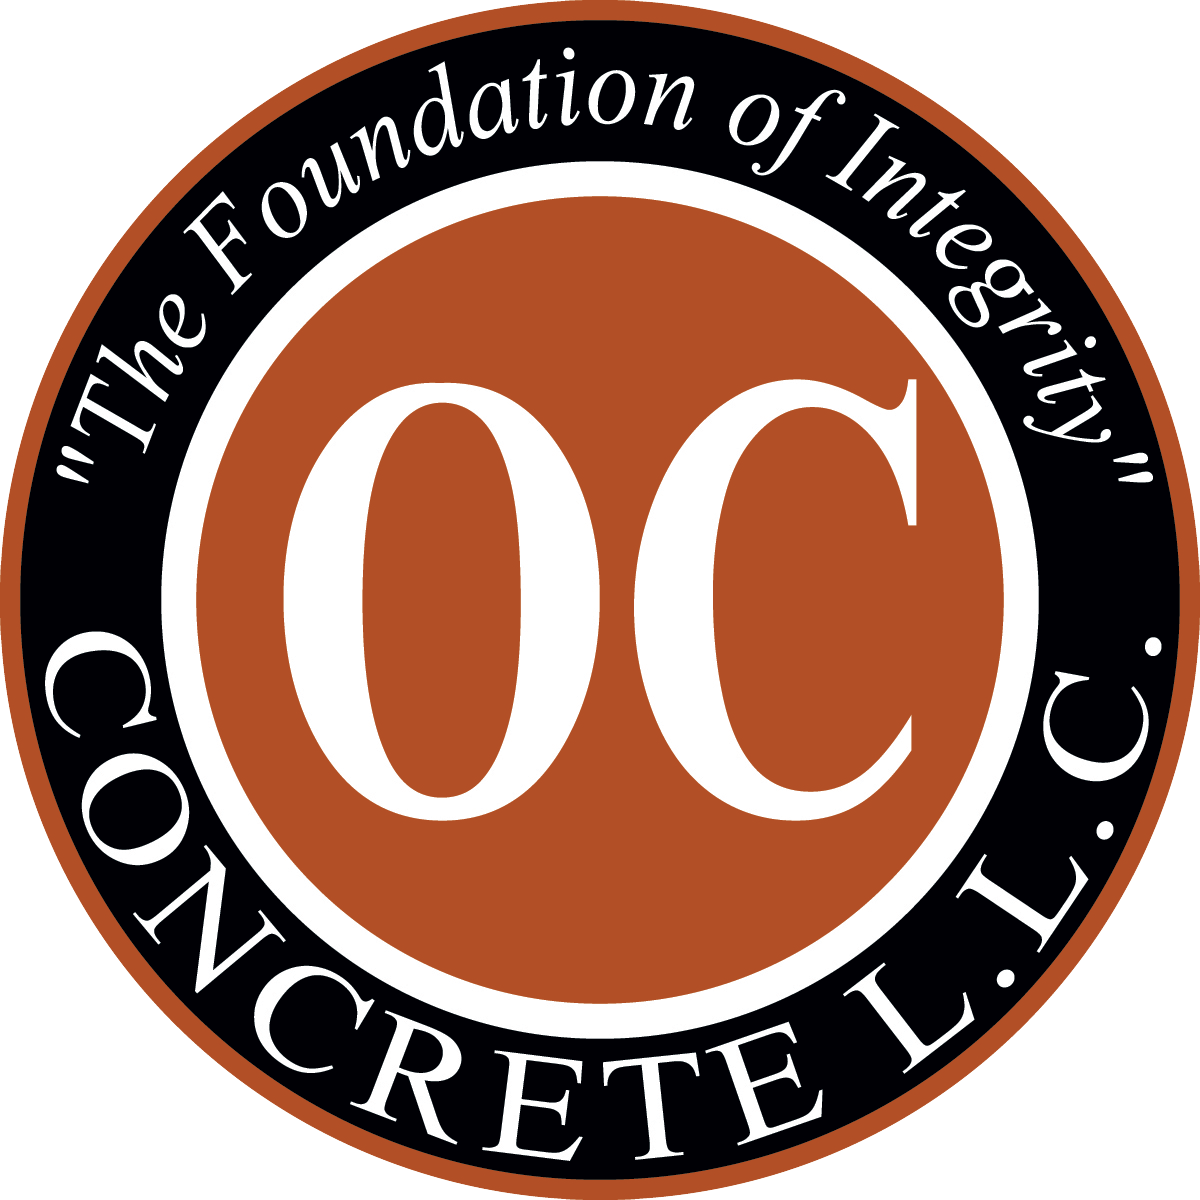 OC Concrete LLC